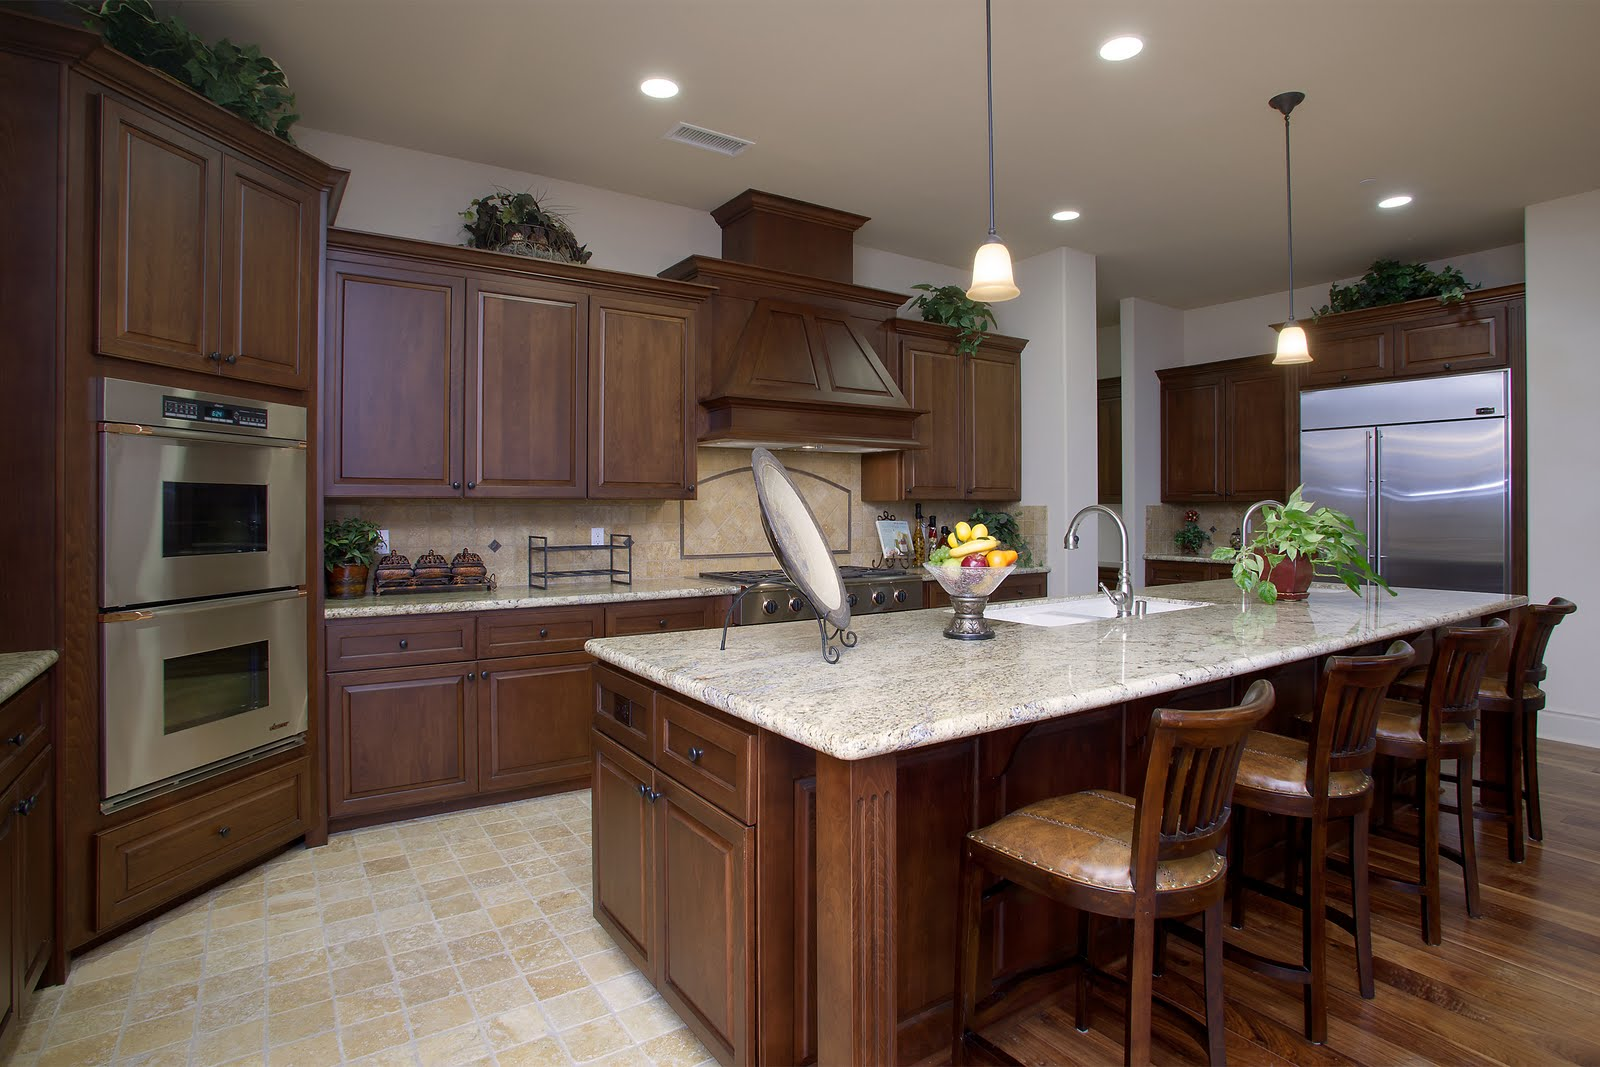 Kitchen model homes kitchen design photos 2015 for Photos of model homes